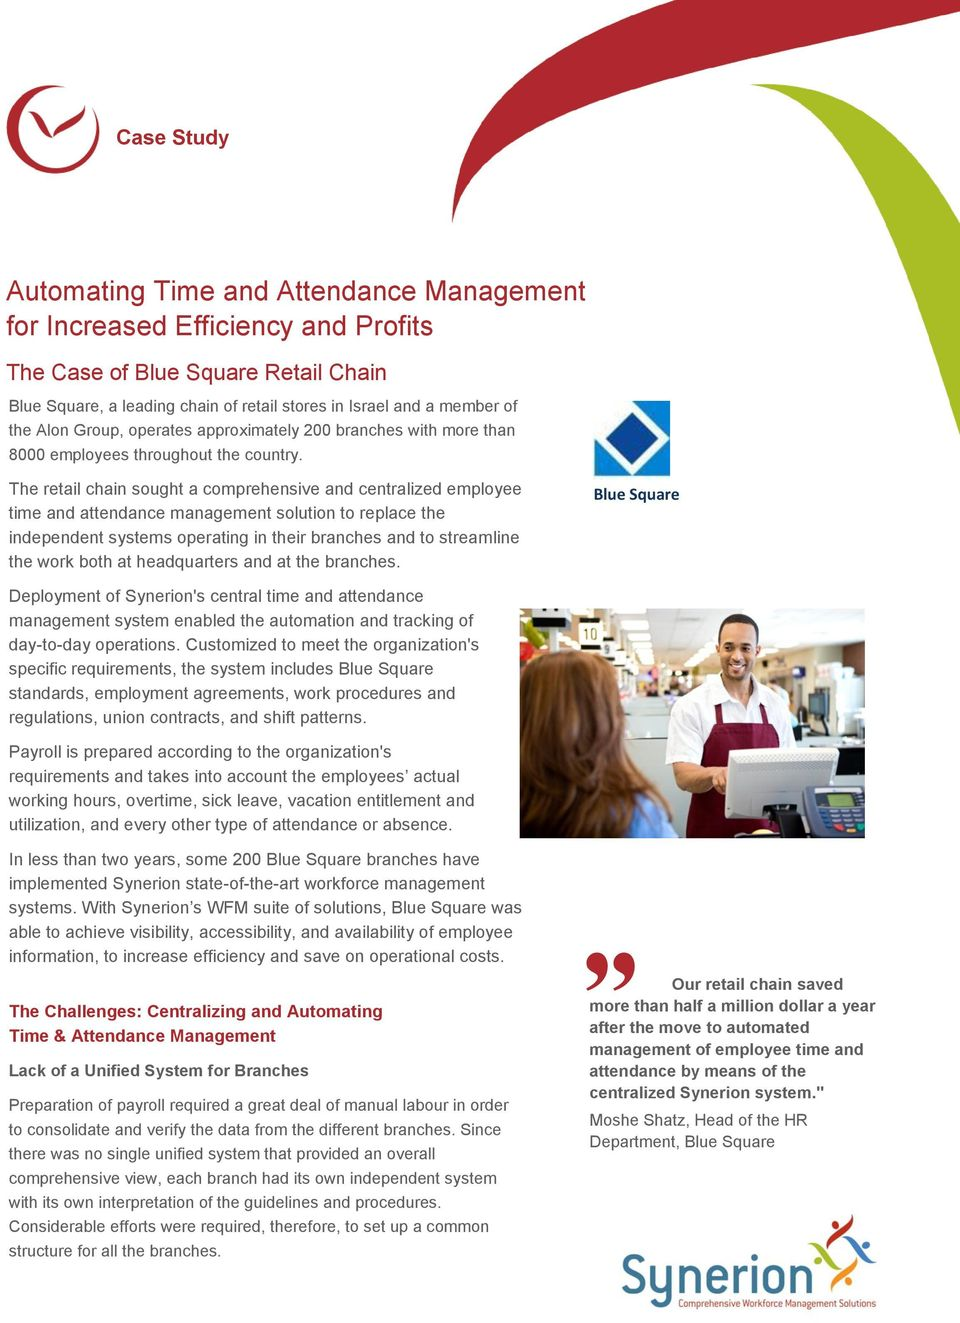 The retail chain sought a comprehensive and centralized employee time and attendance management solution to replace the independent systems operating in their branches and to streamline the work both